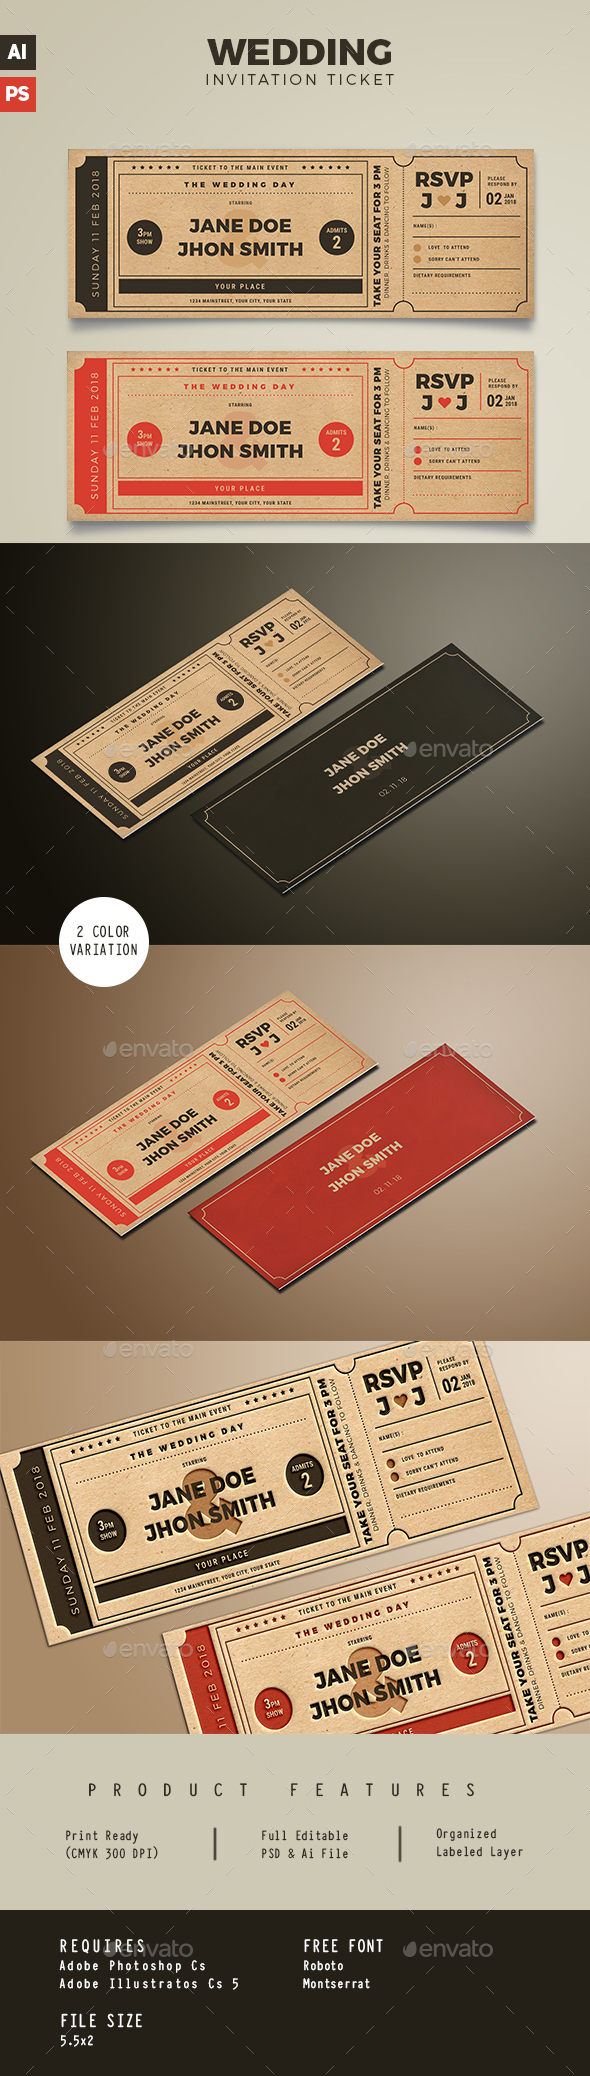 wedding invitation movie ticket weddings cards invites - Movie Ticket Wedding Invitations